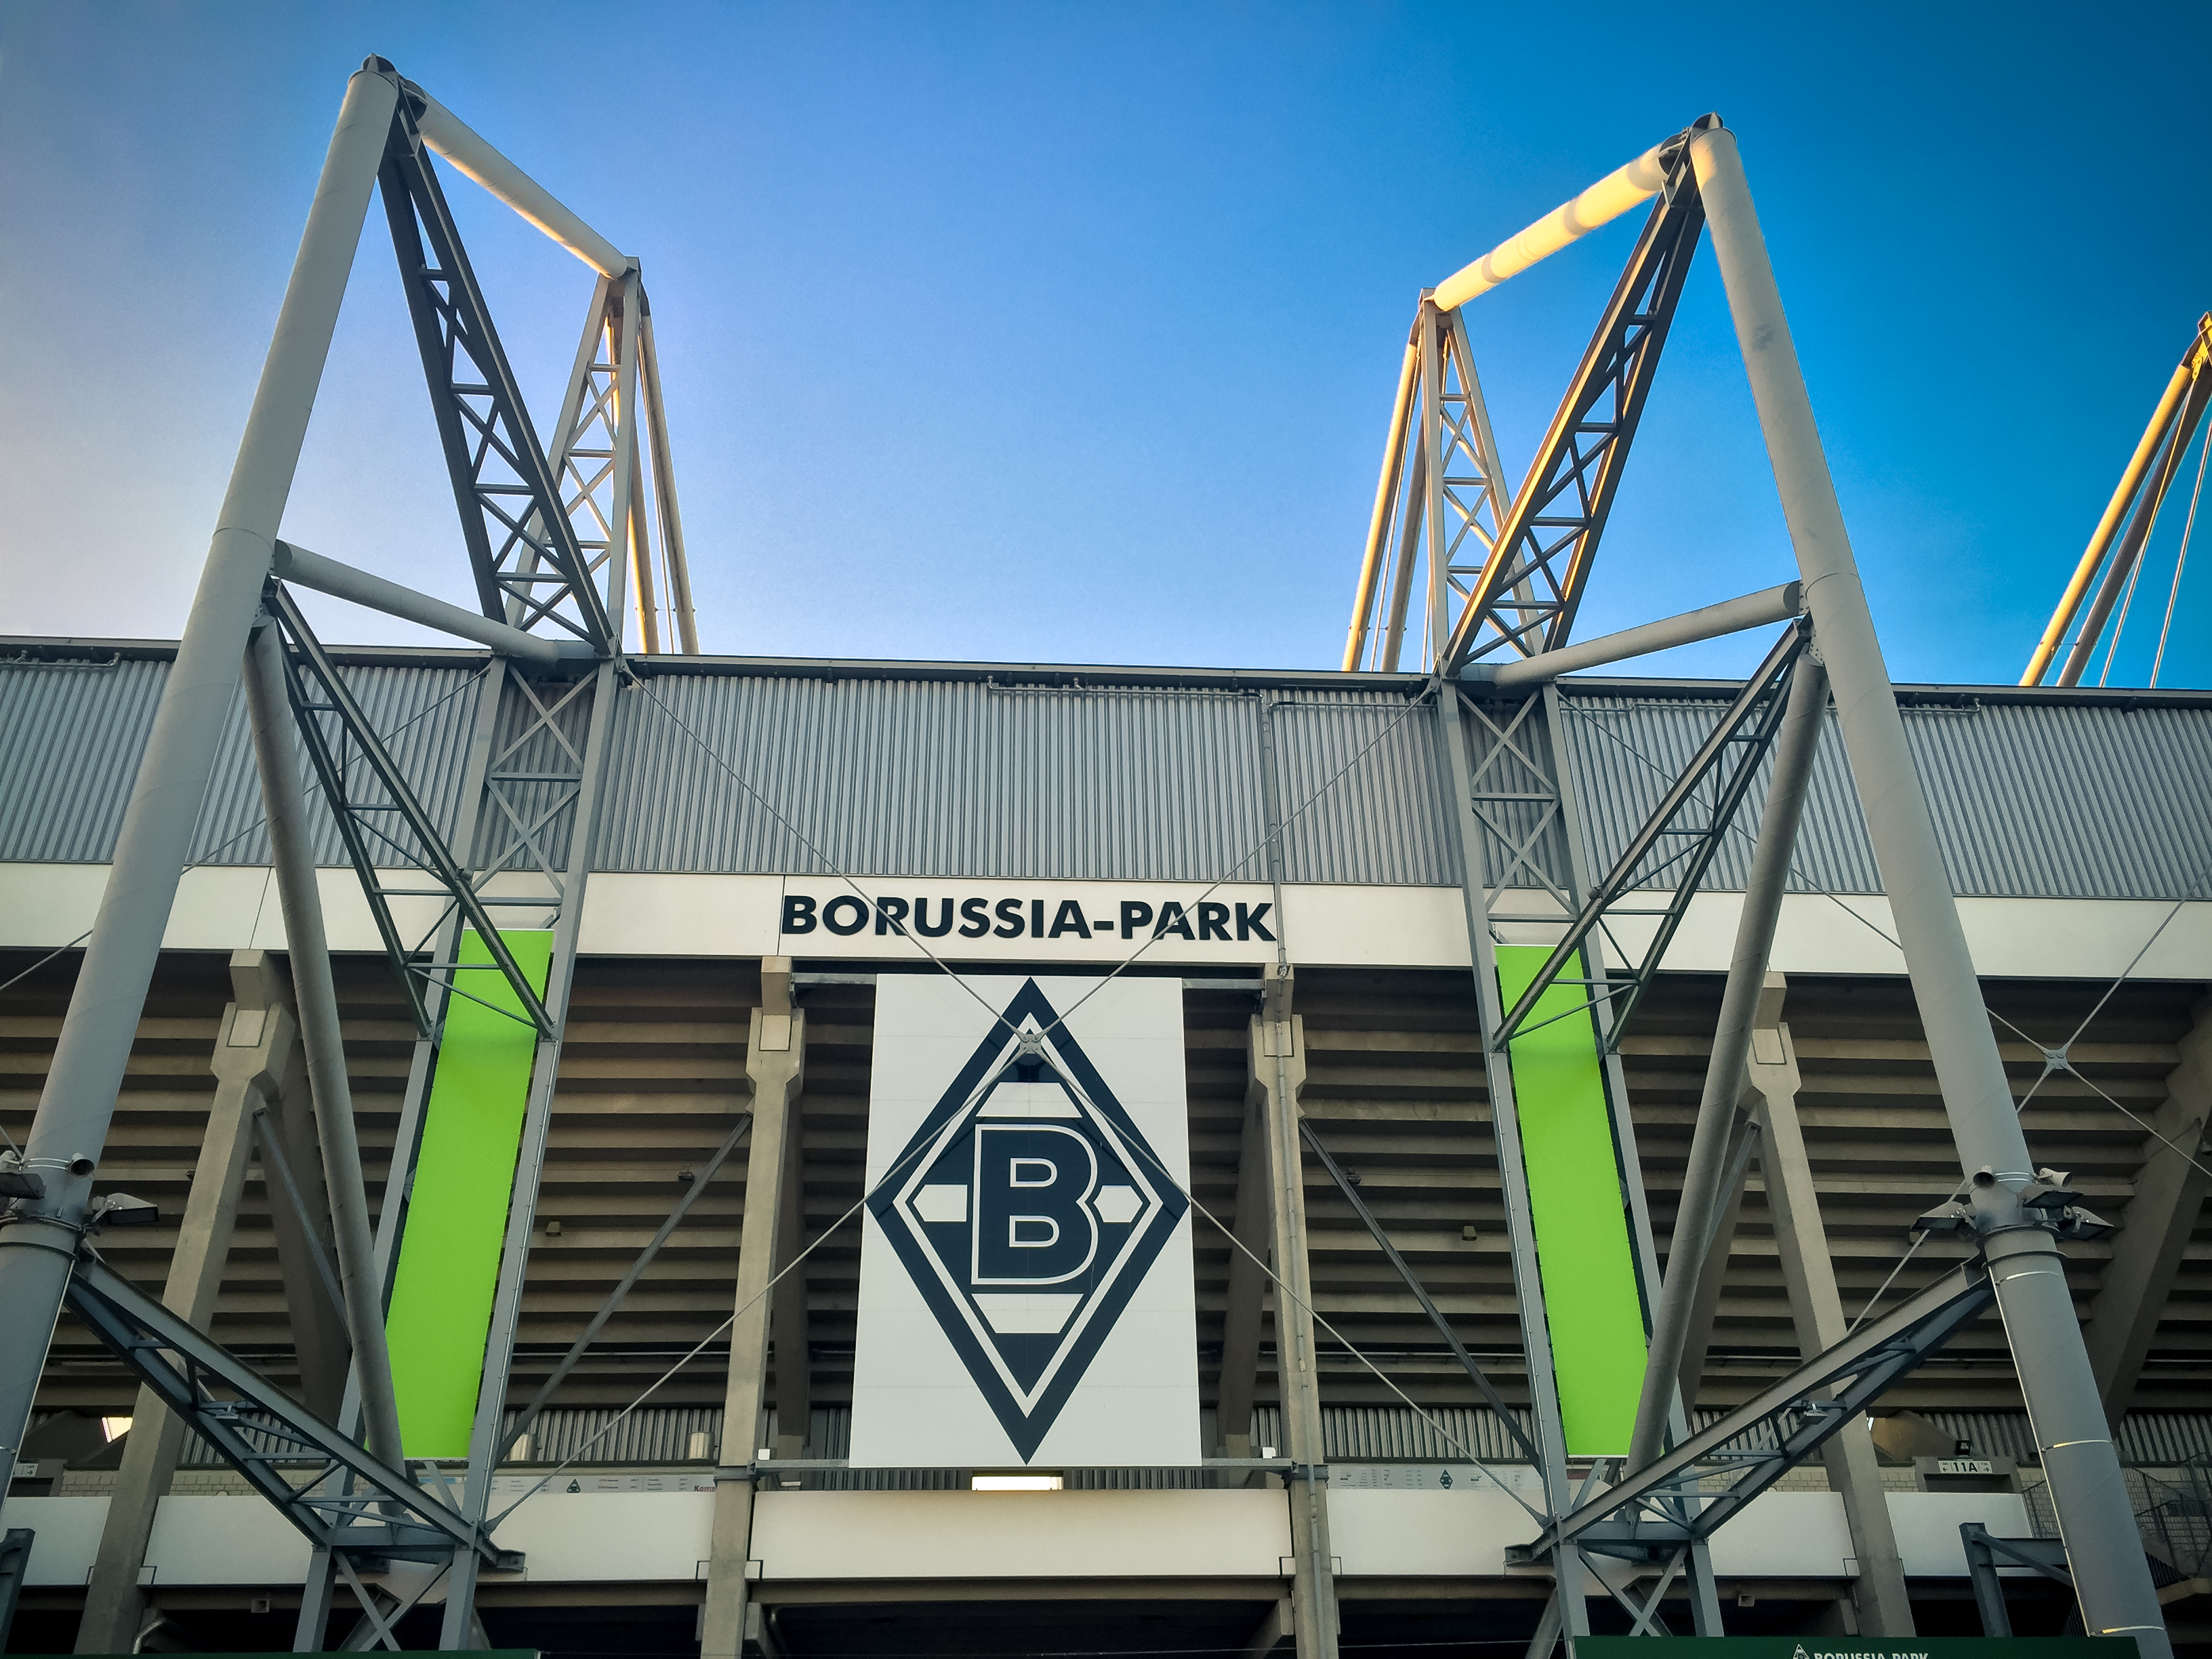 Football stadium Borussia Park in Monchengladbach